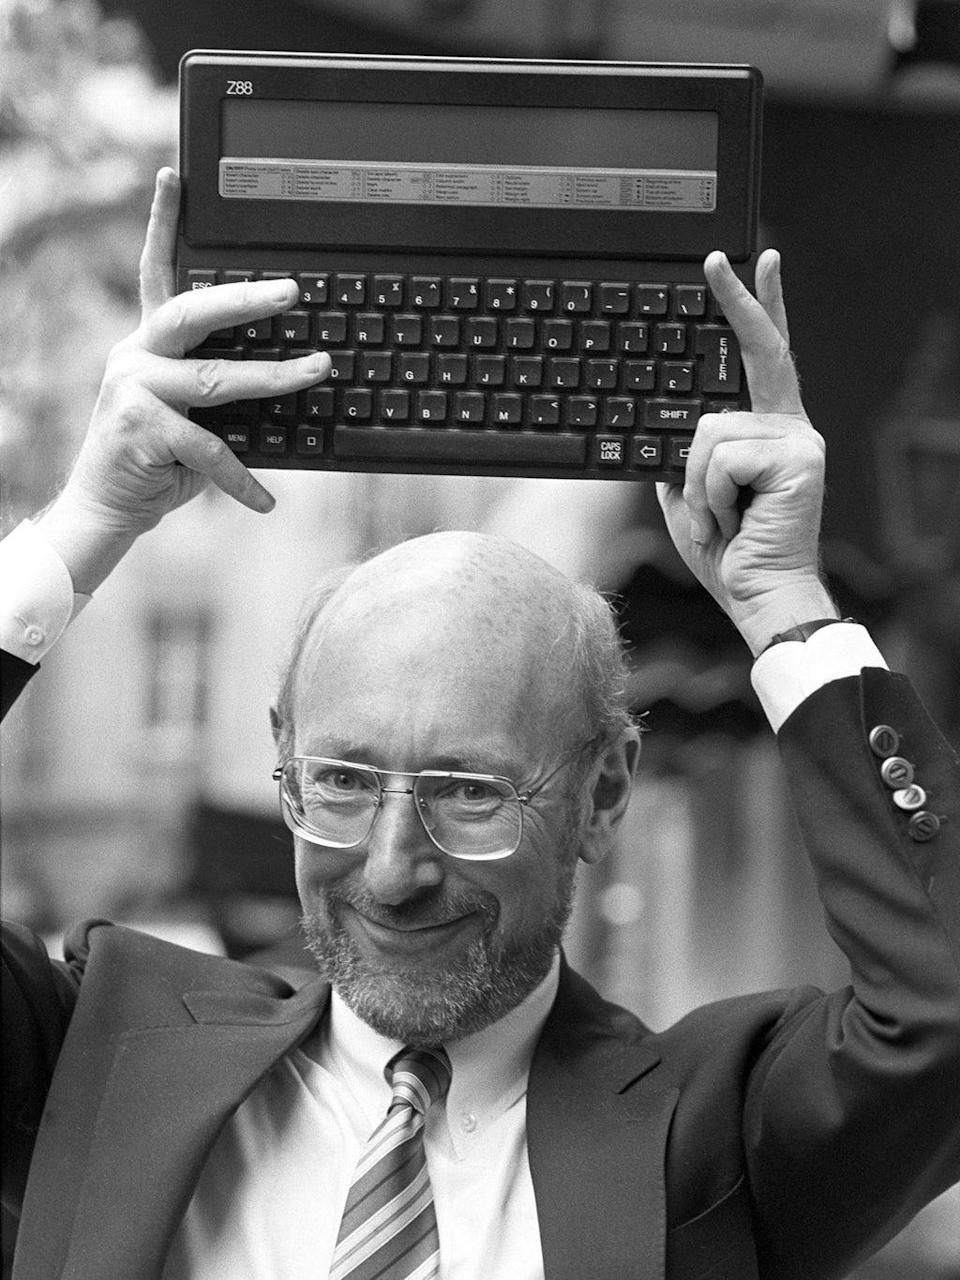 Sir Clive holds up the Z88 in September 1987 (PA)